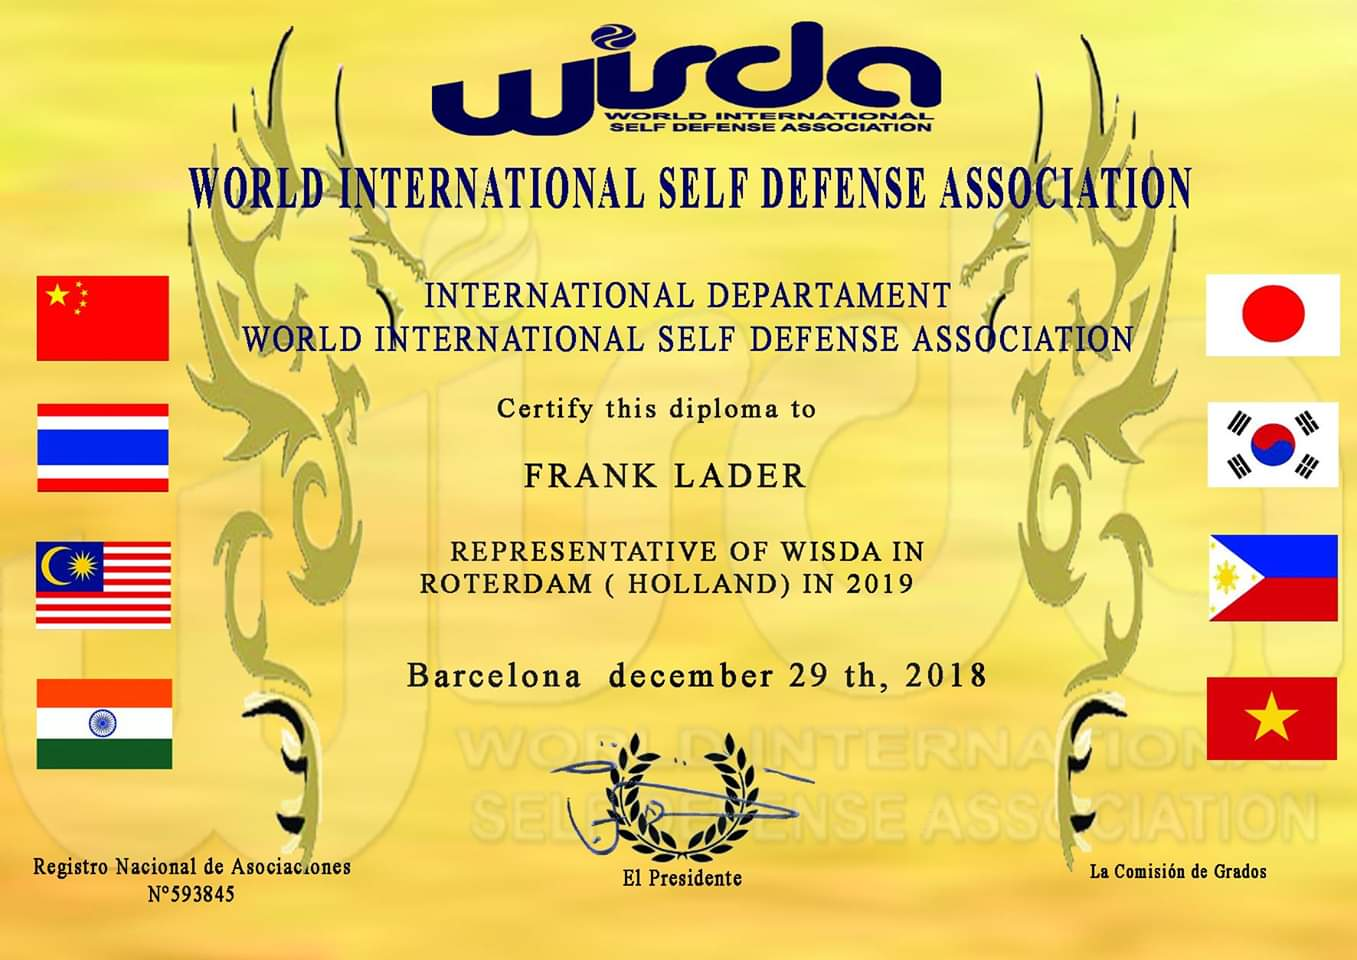 Representant voor 2019 van de World International Self Defense Association (WISDA).